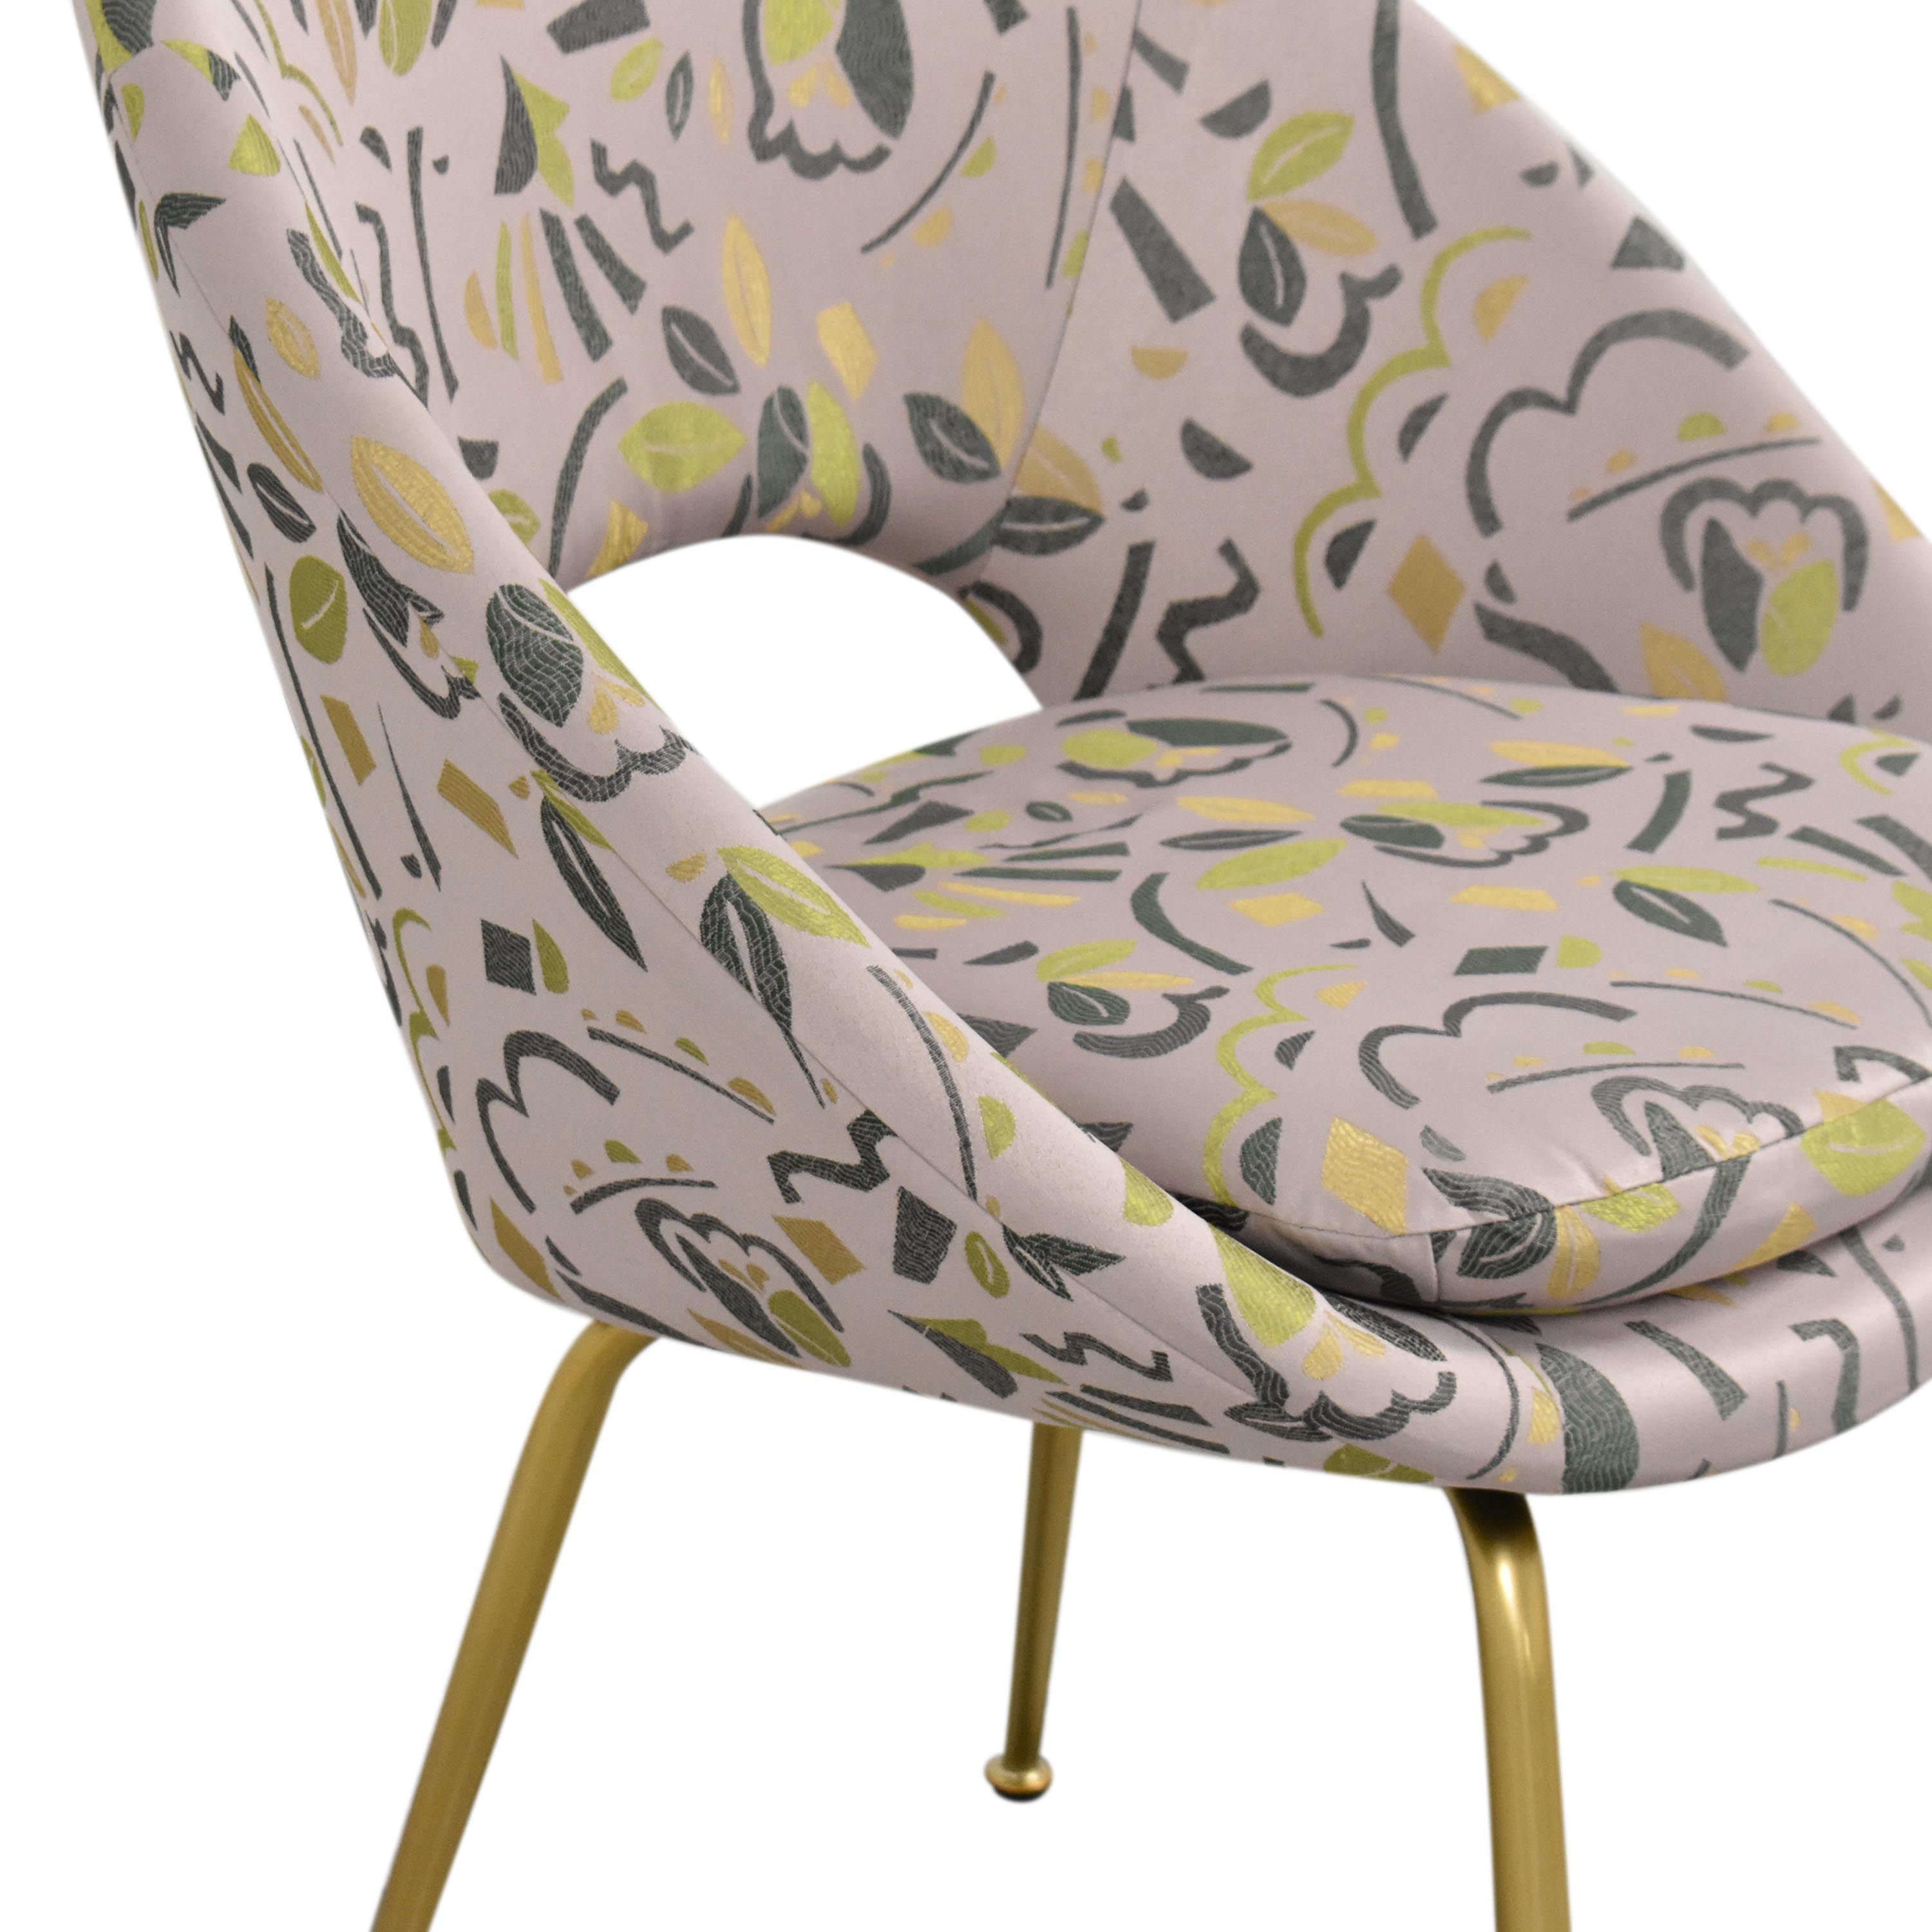 West Elm West Elm Orb Upholstered Chair used